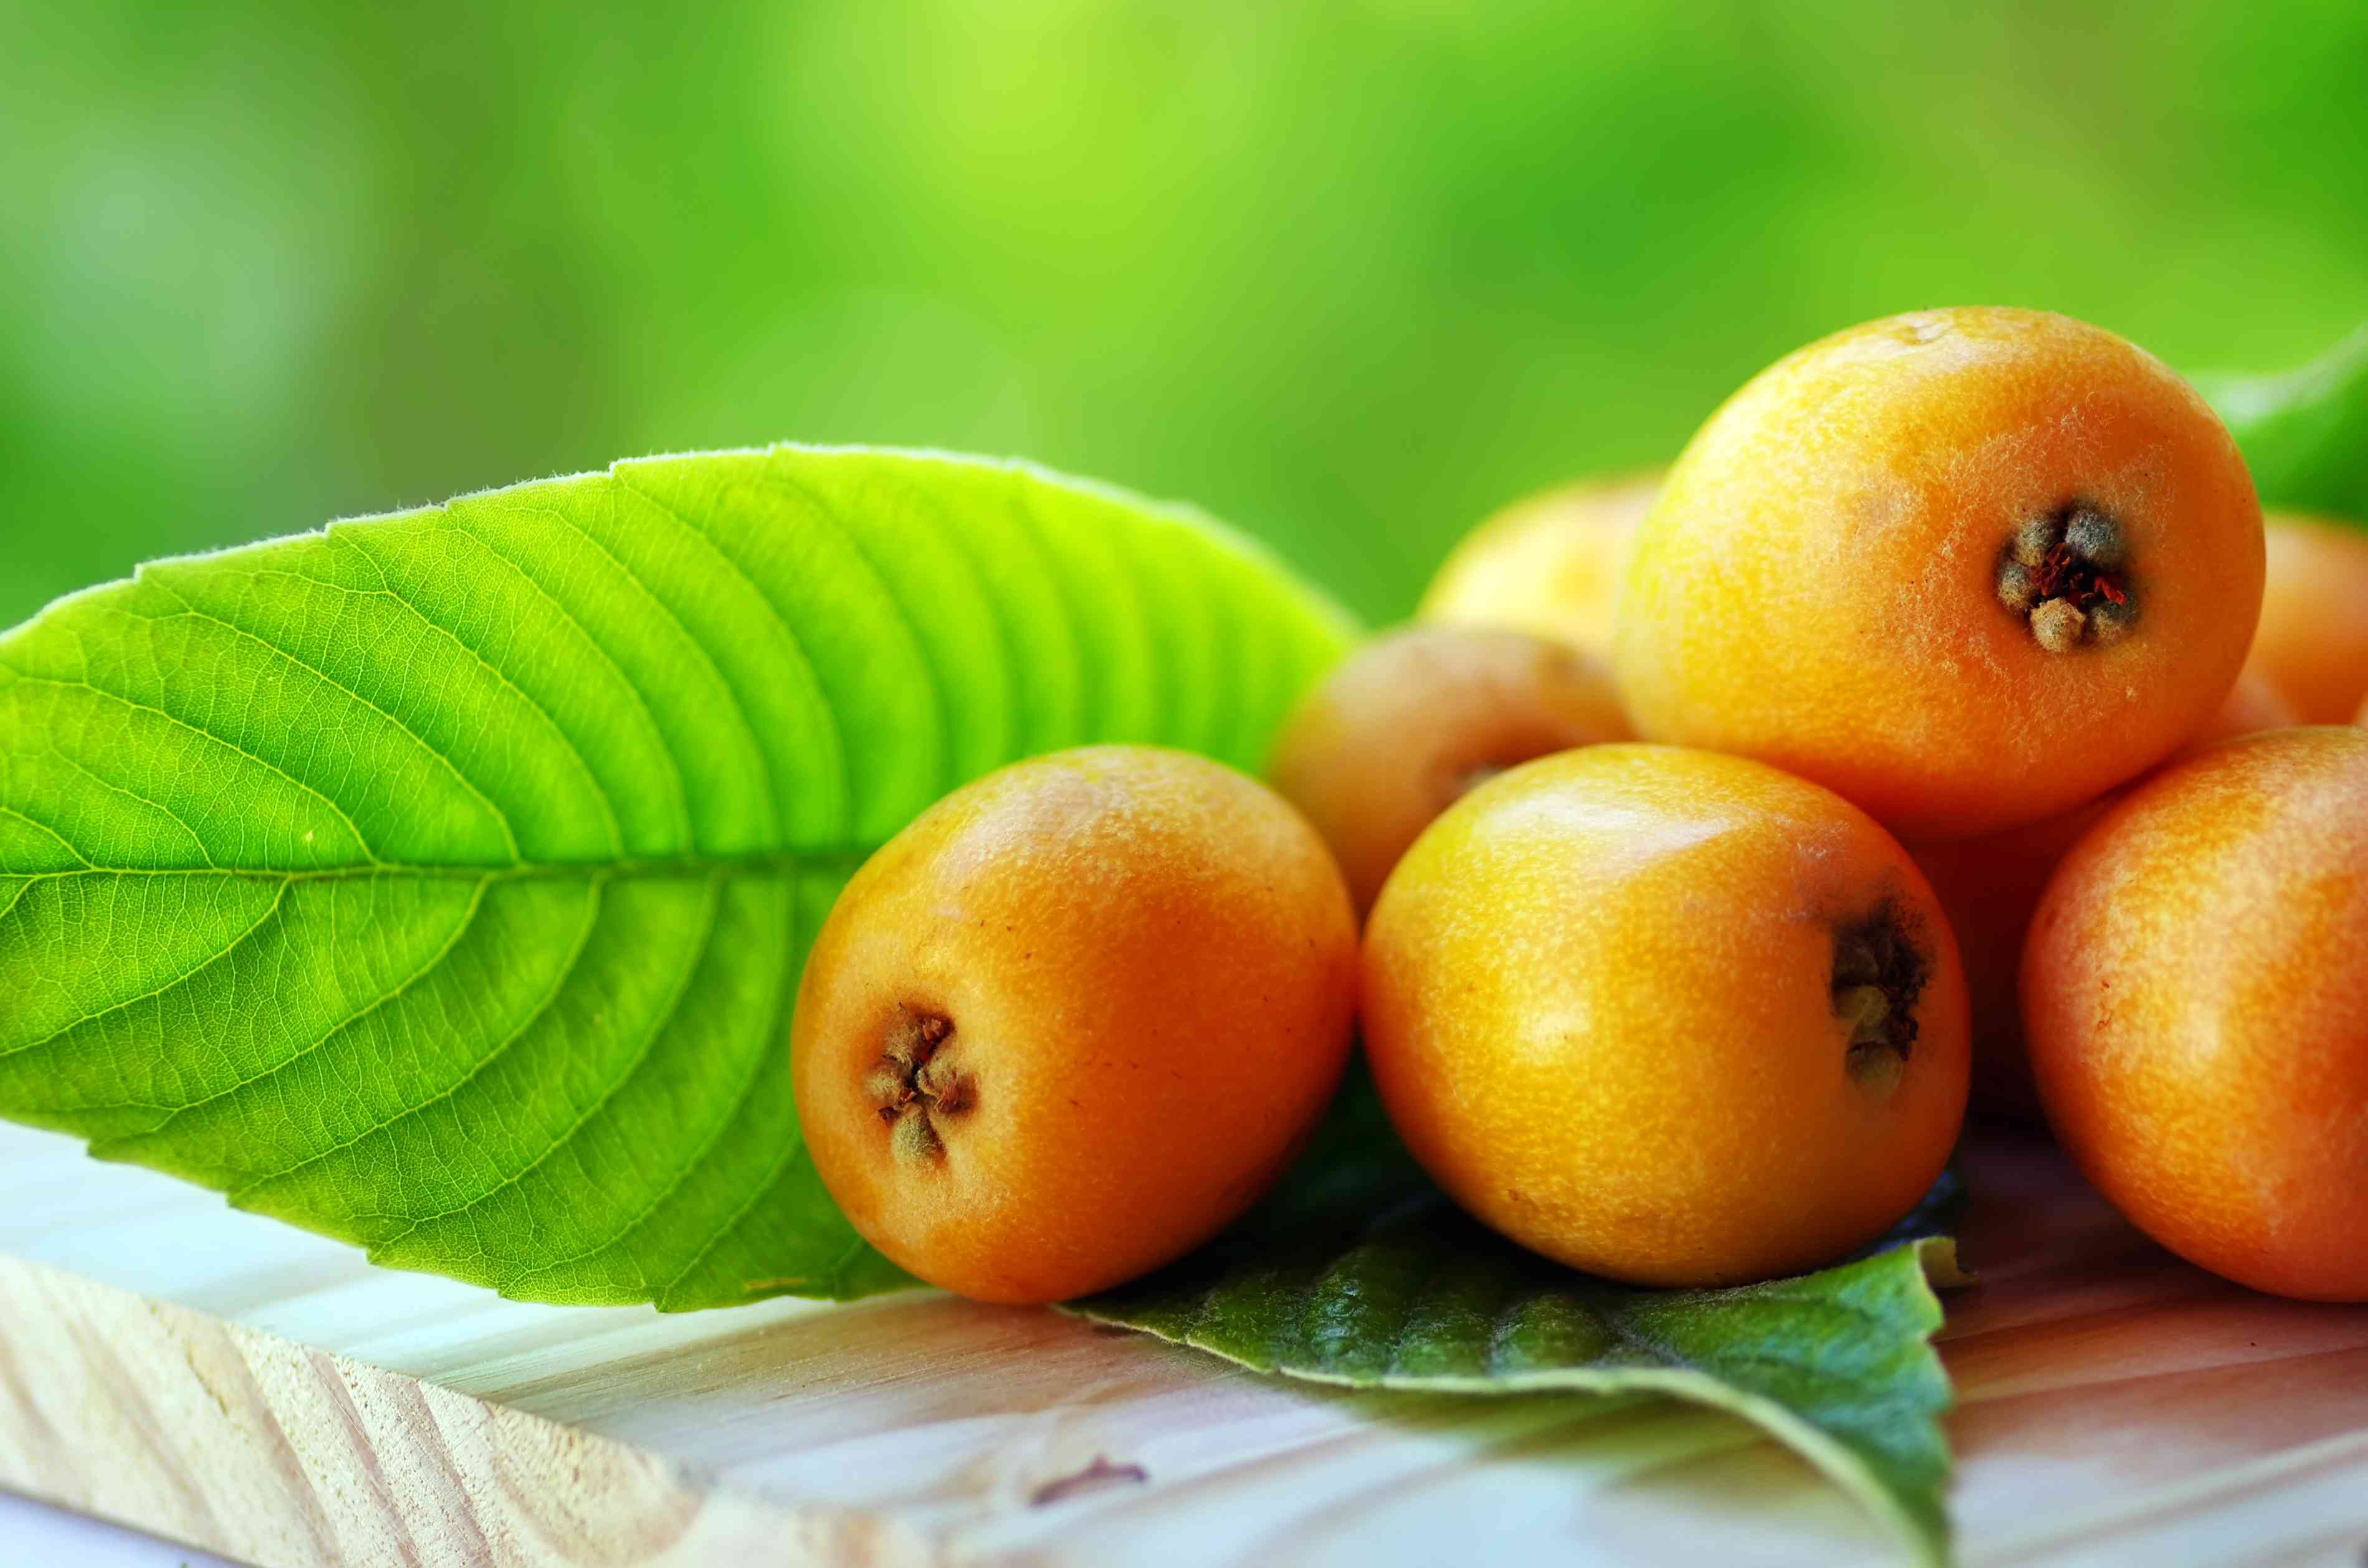 Loquats on a table